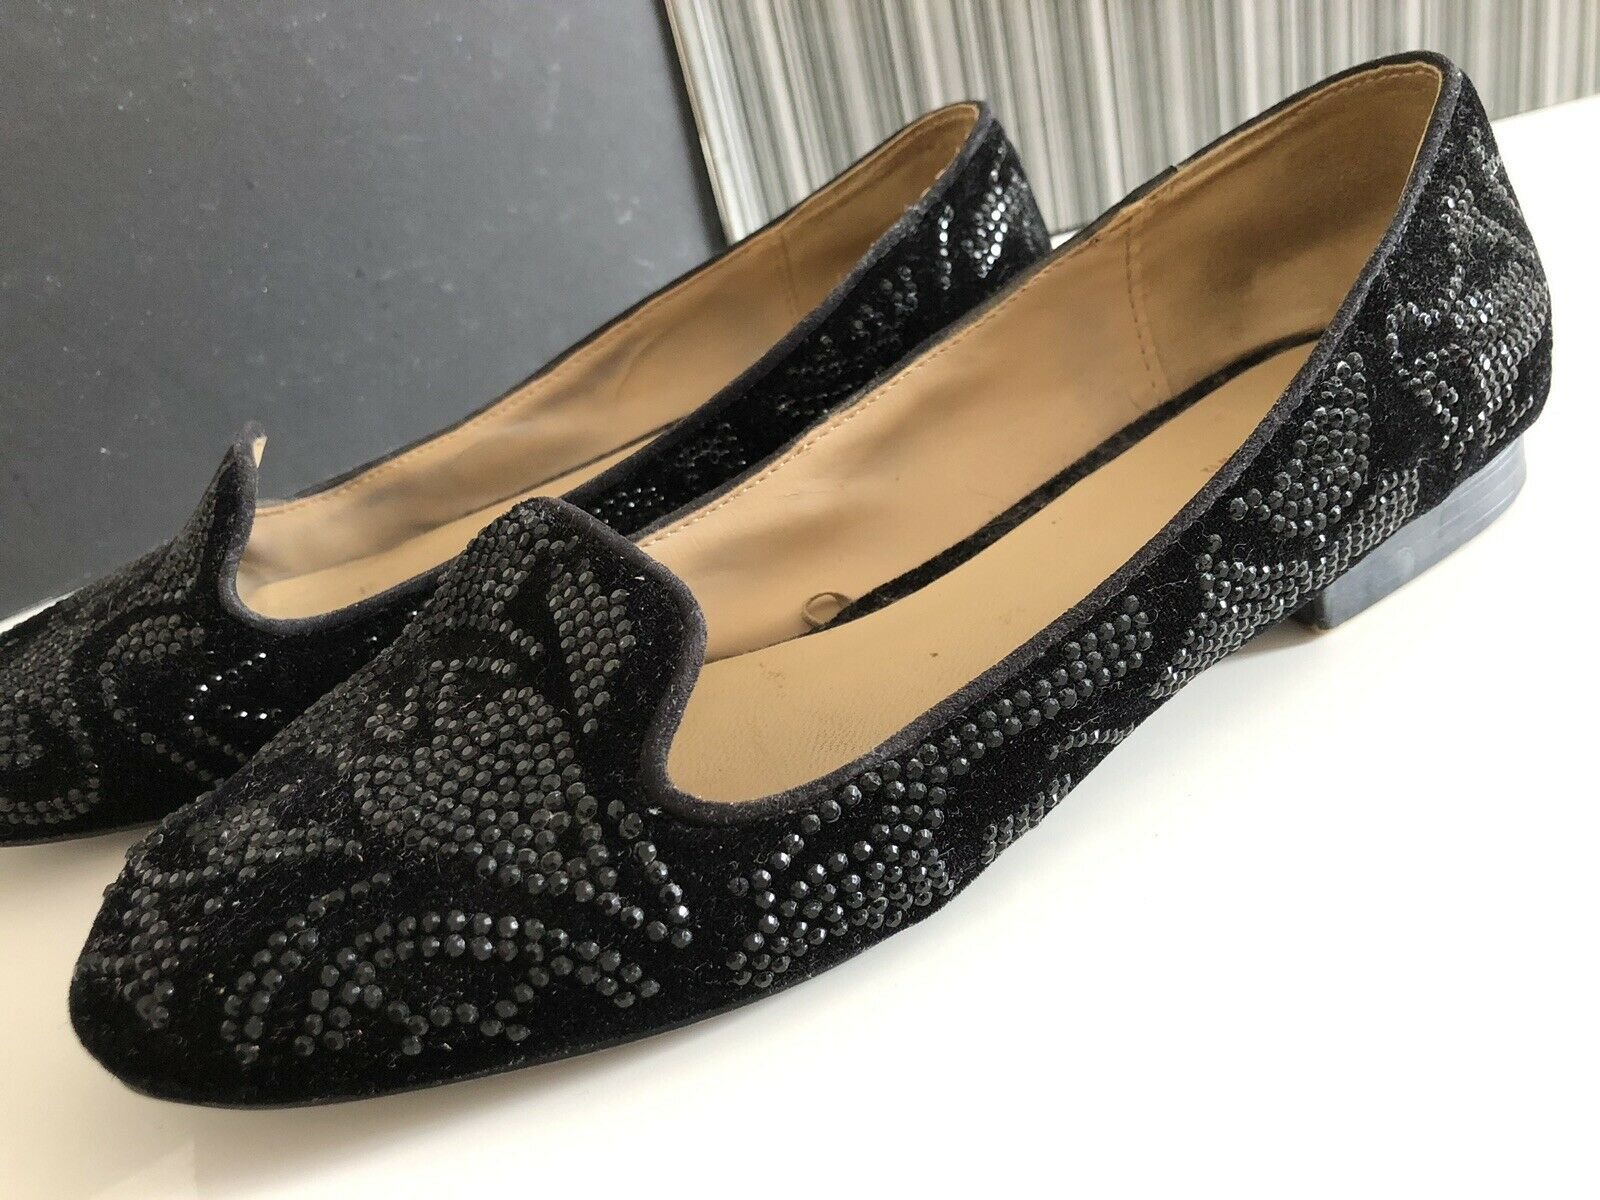 Zara Slipper 40 Mokassins Samt Strass schwarz Schlappen Business